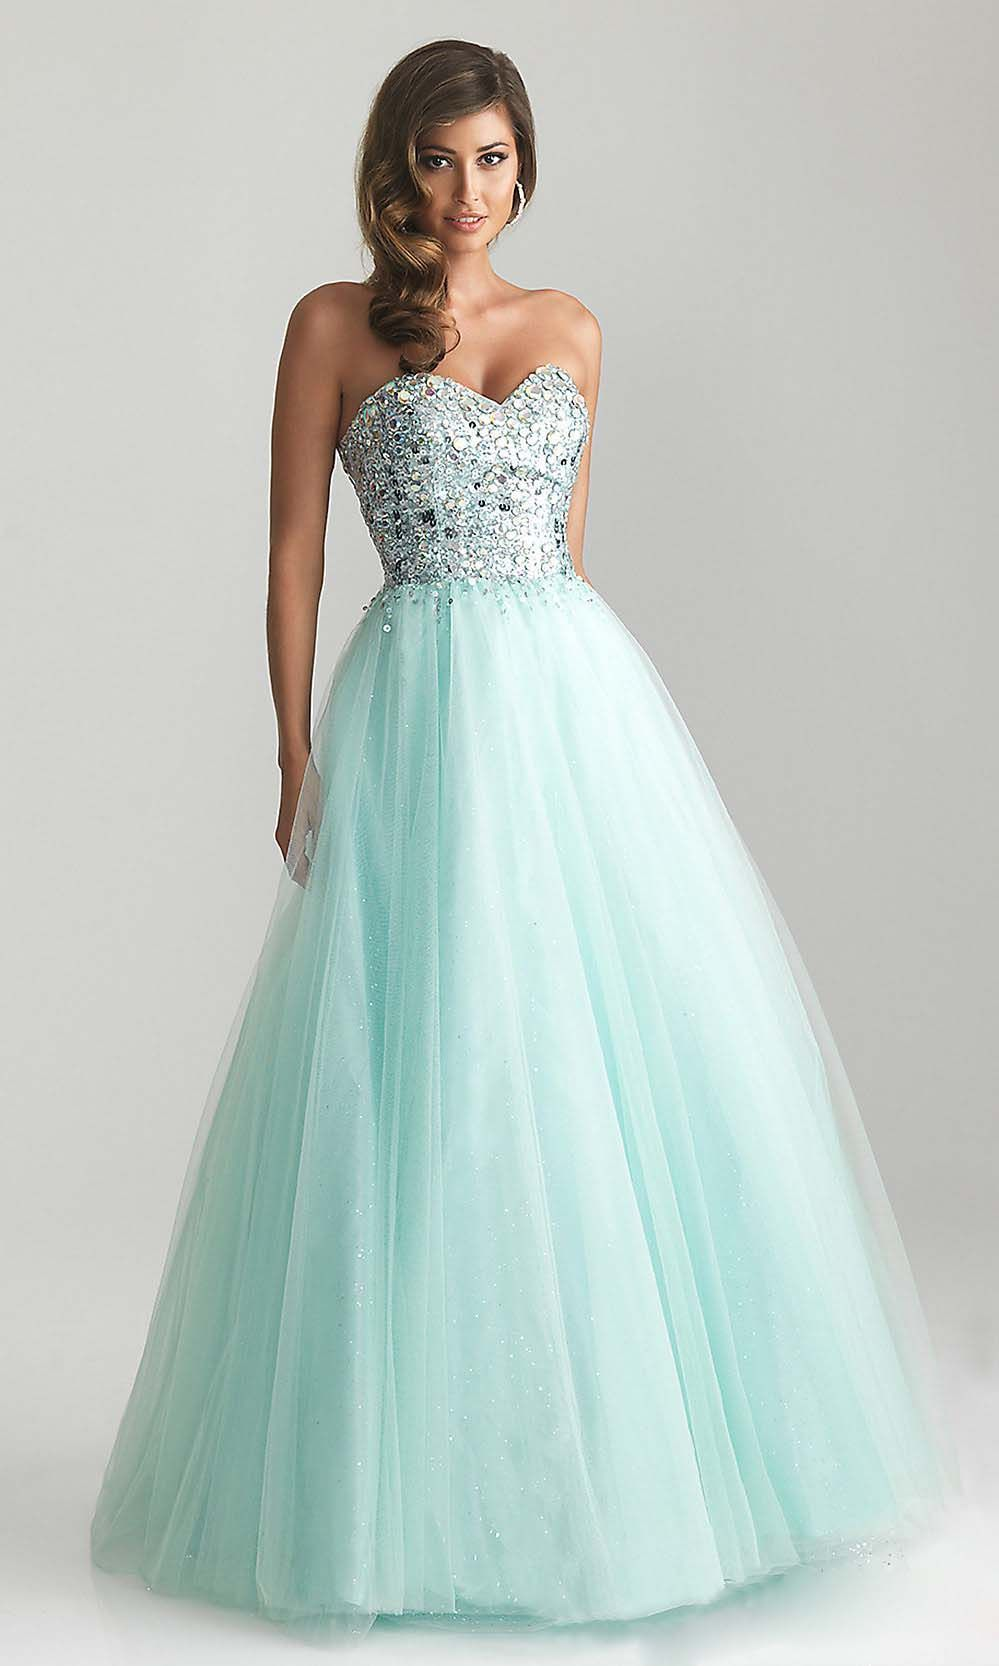 A line prom dress, tiffany blue prom dresses, affordable prom dress ...